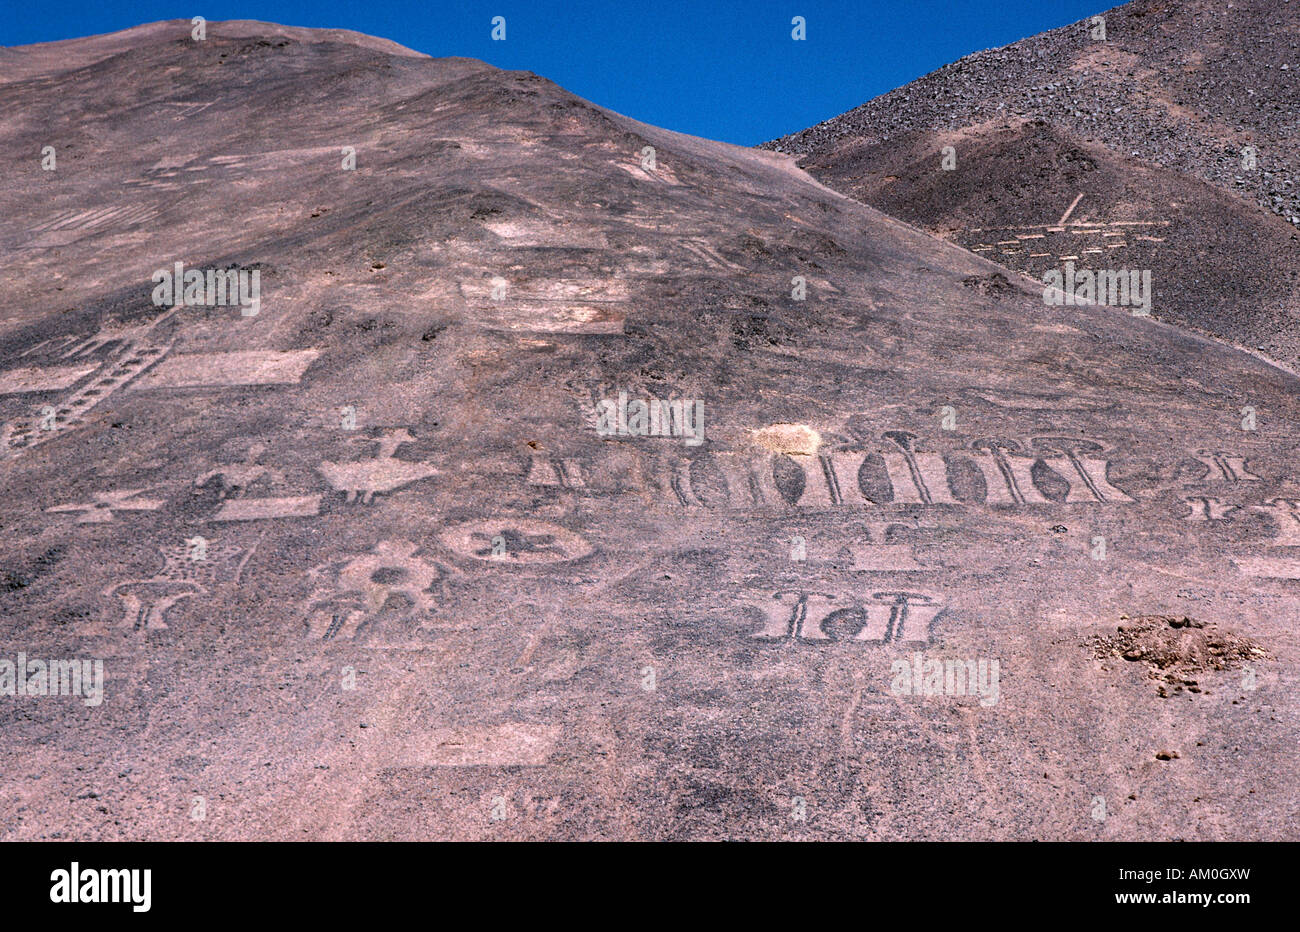 Geoglyphs, over 1000 years old, Pampa del Tamarugal, Atacama Desert, Chile Stock Photo